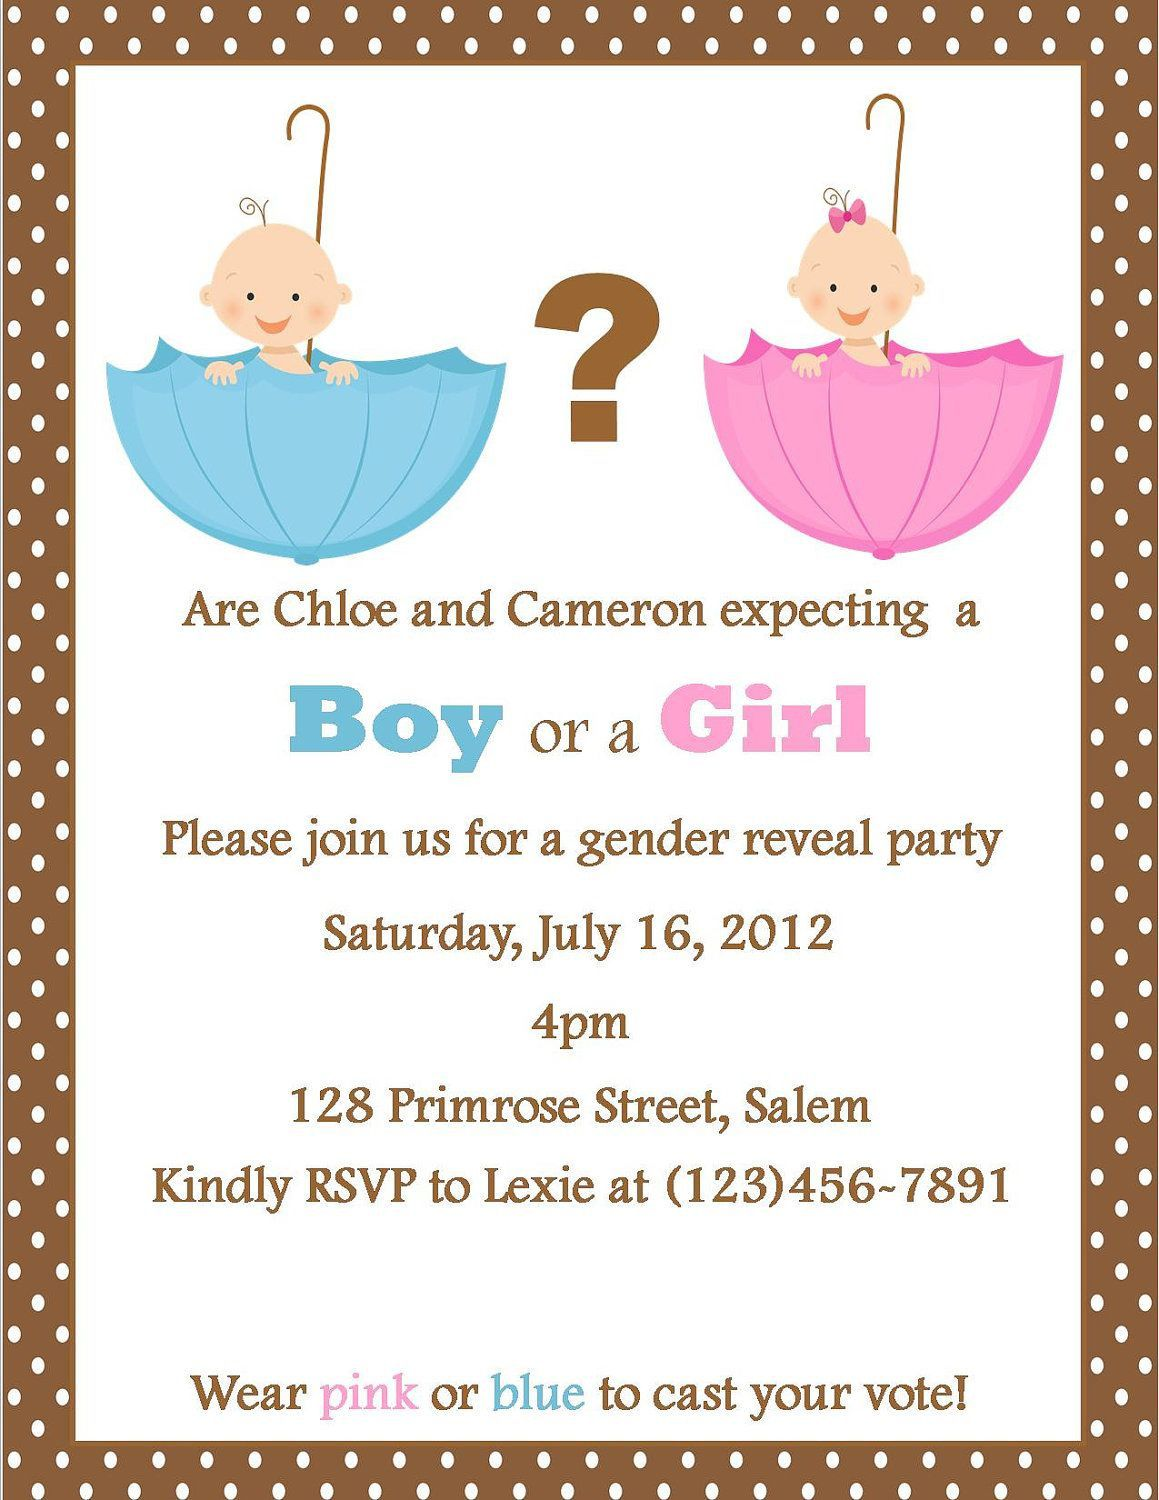 002 Best Gender Reveal Invitation Template High Resolution  Templates Party Free Printable MakerFull